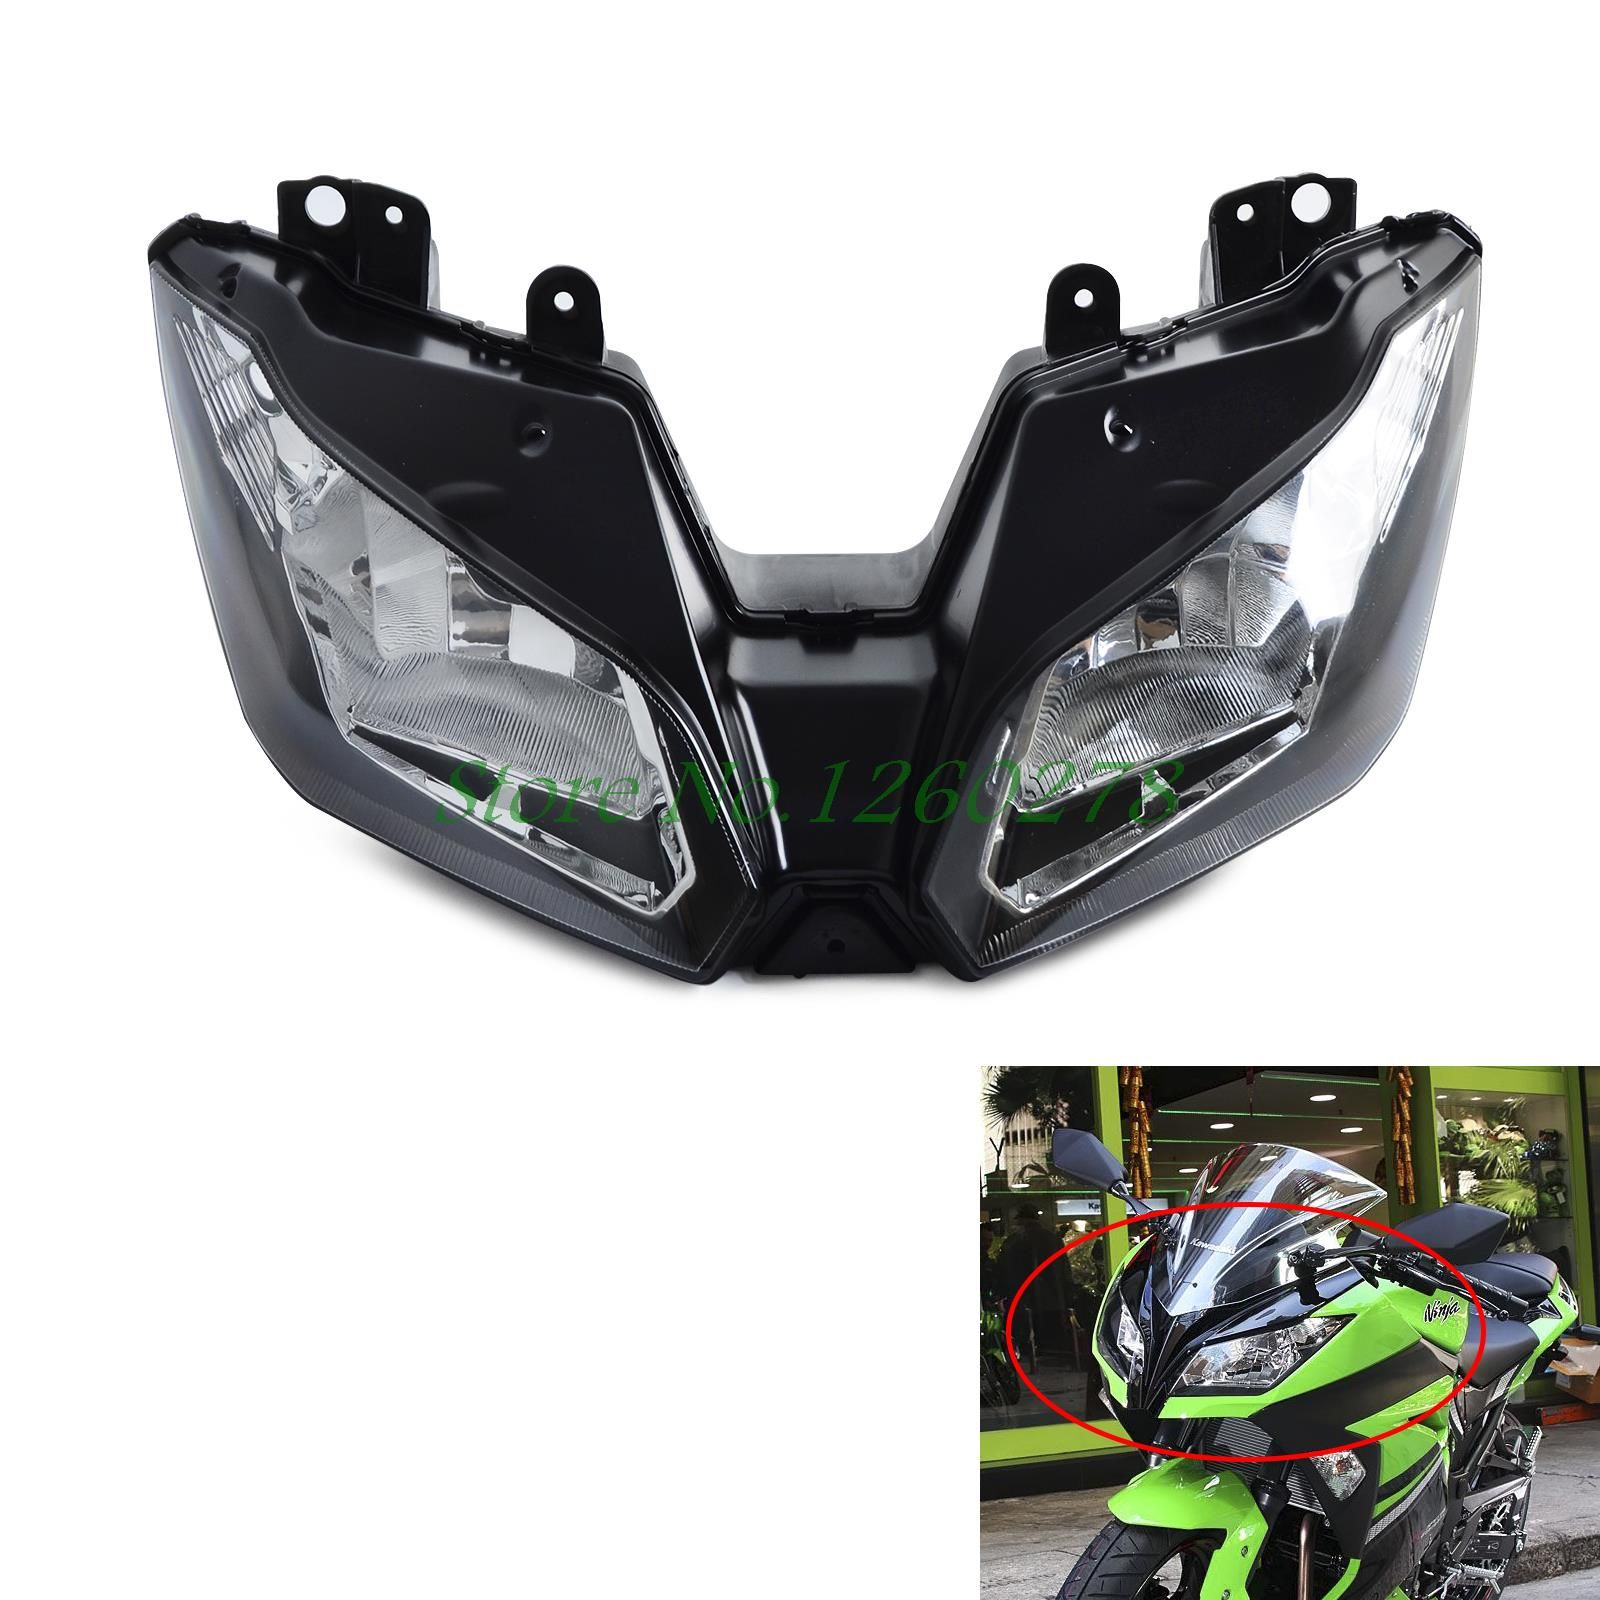 Motorcycle Headlights Headlamp Head Light Lamp Assembly For Kawasaki NINJA 300 2013 2014 2015 2016 VERSYS 650 1000 2015 2016